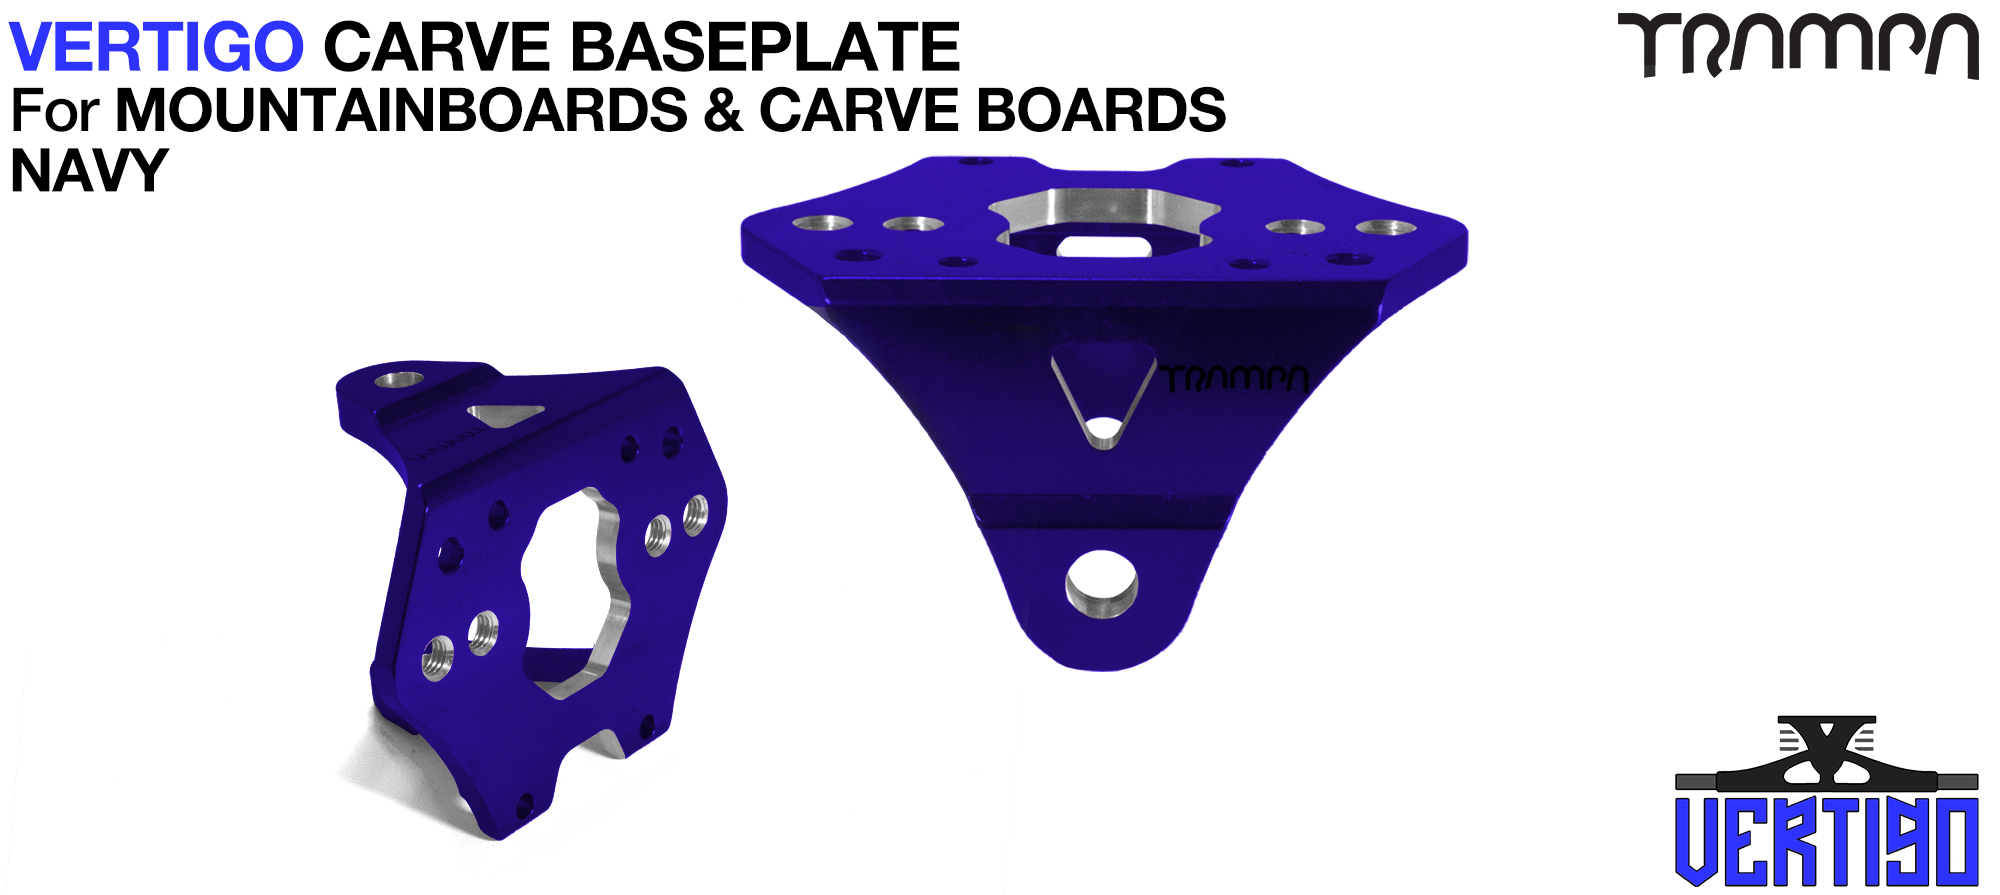 VERTIGO CARVE Baseplate NAVY - T6 Aluminum Powder coated & CNC lightened - Black logo